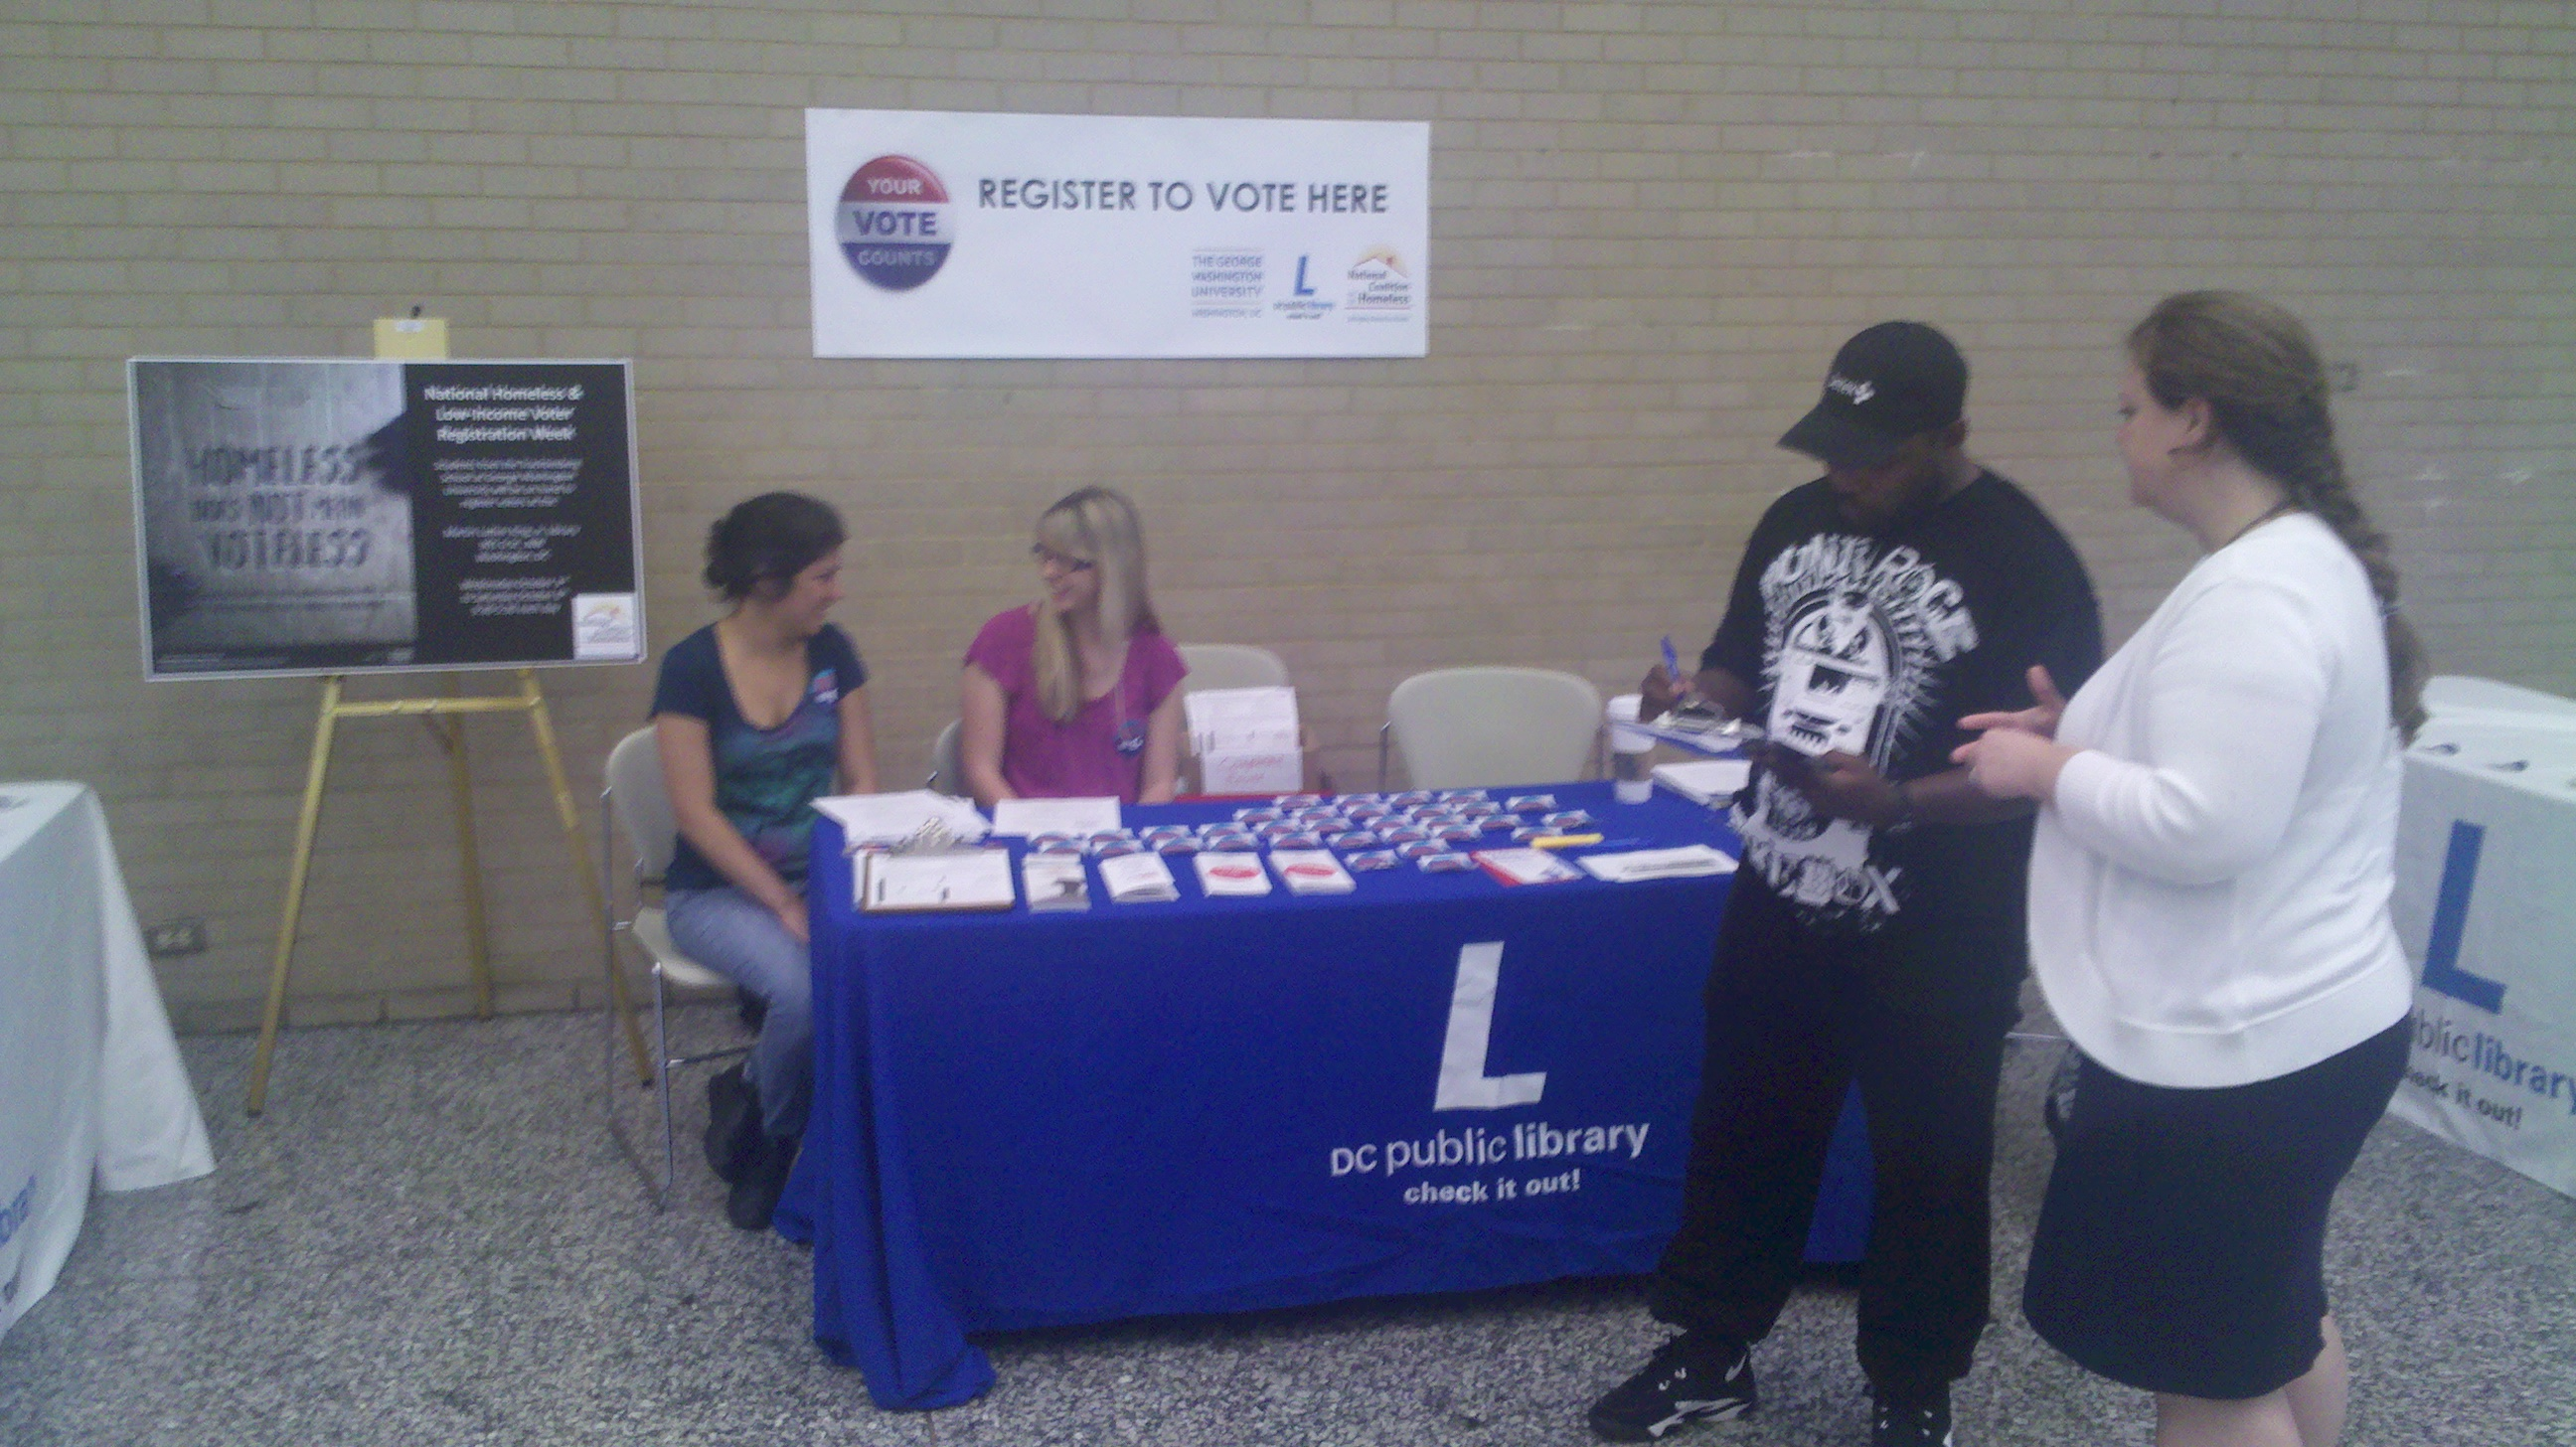 Volunteers register voters in Washington, DC